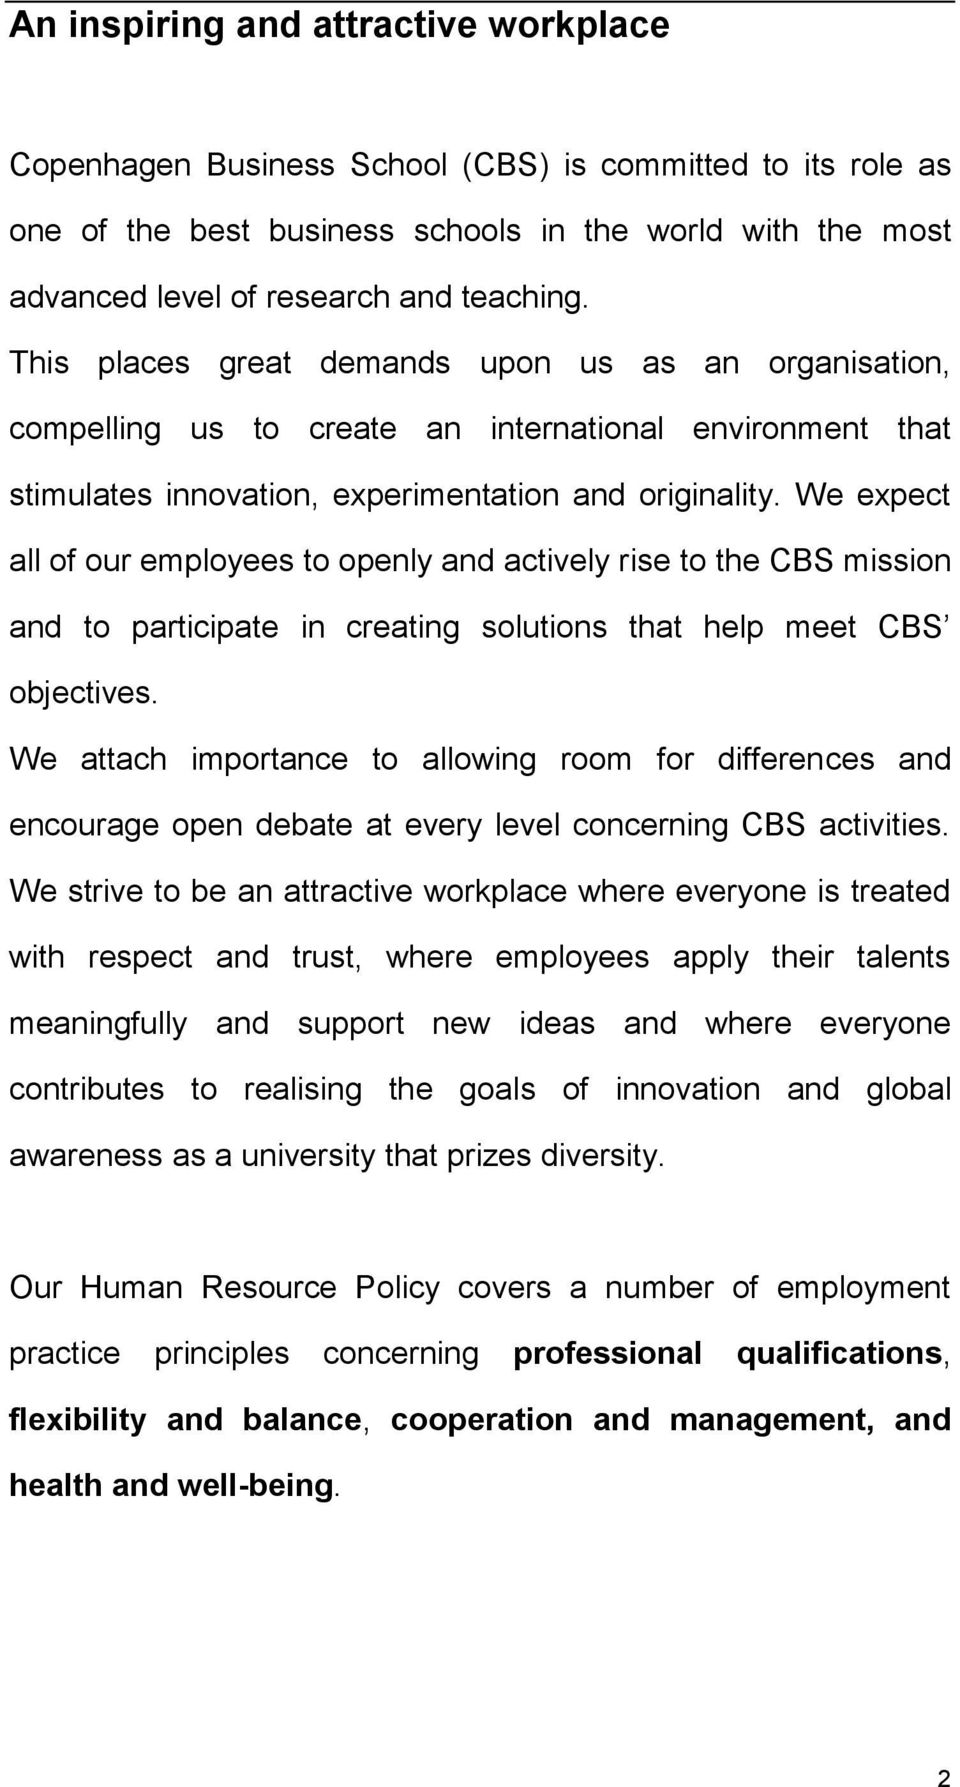 We expect all of our employees to openly and actively rise to the CBS mission and to participate in creating solutions that help meet CBS objectives.